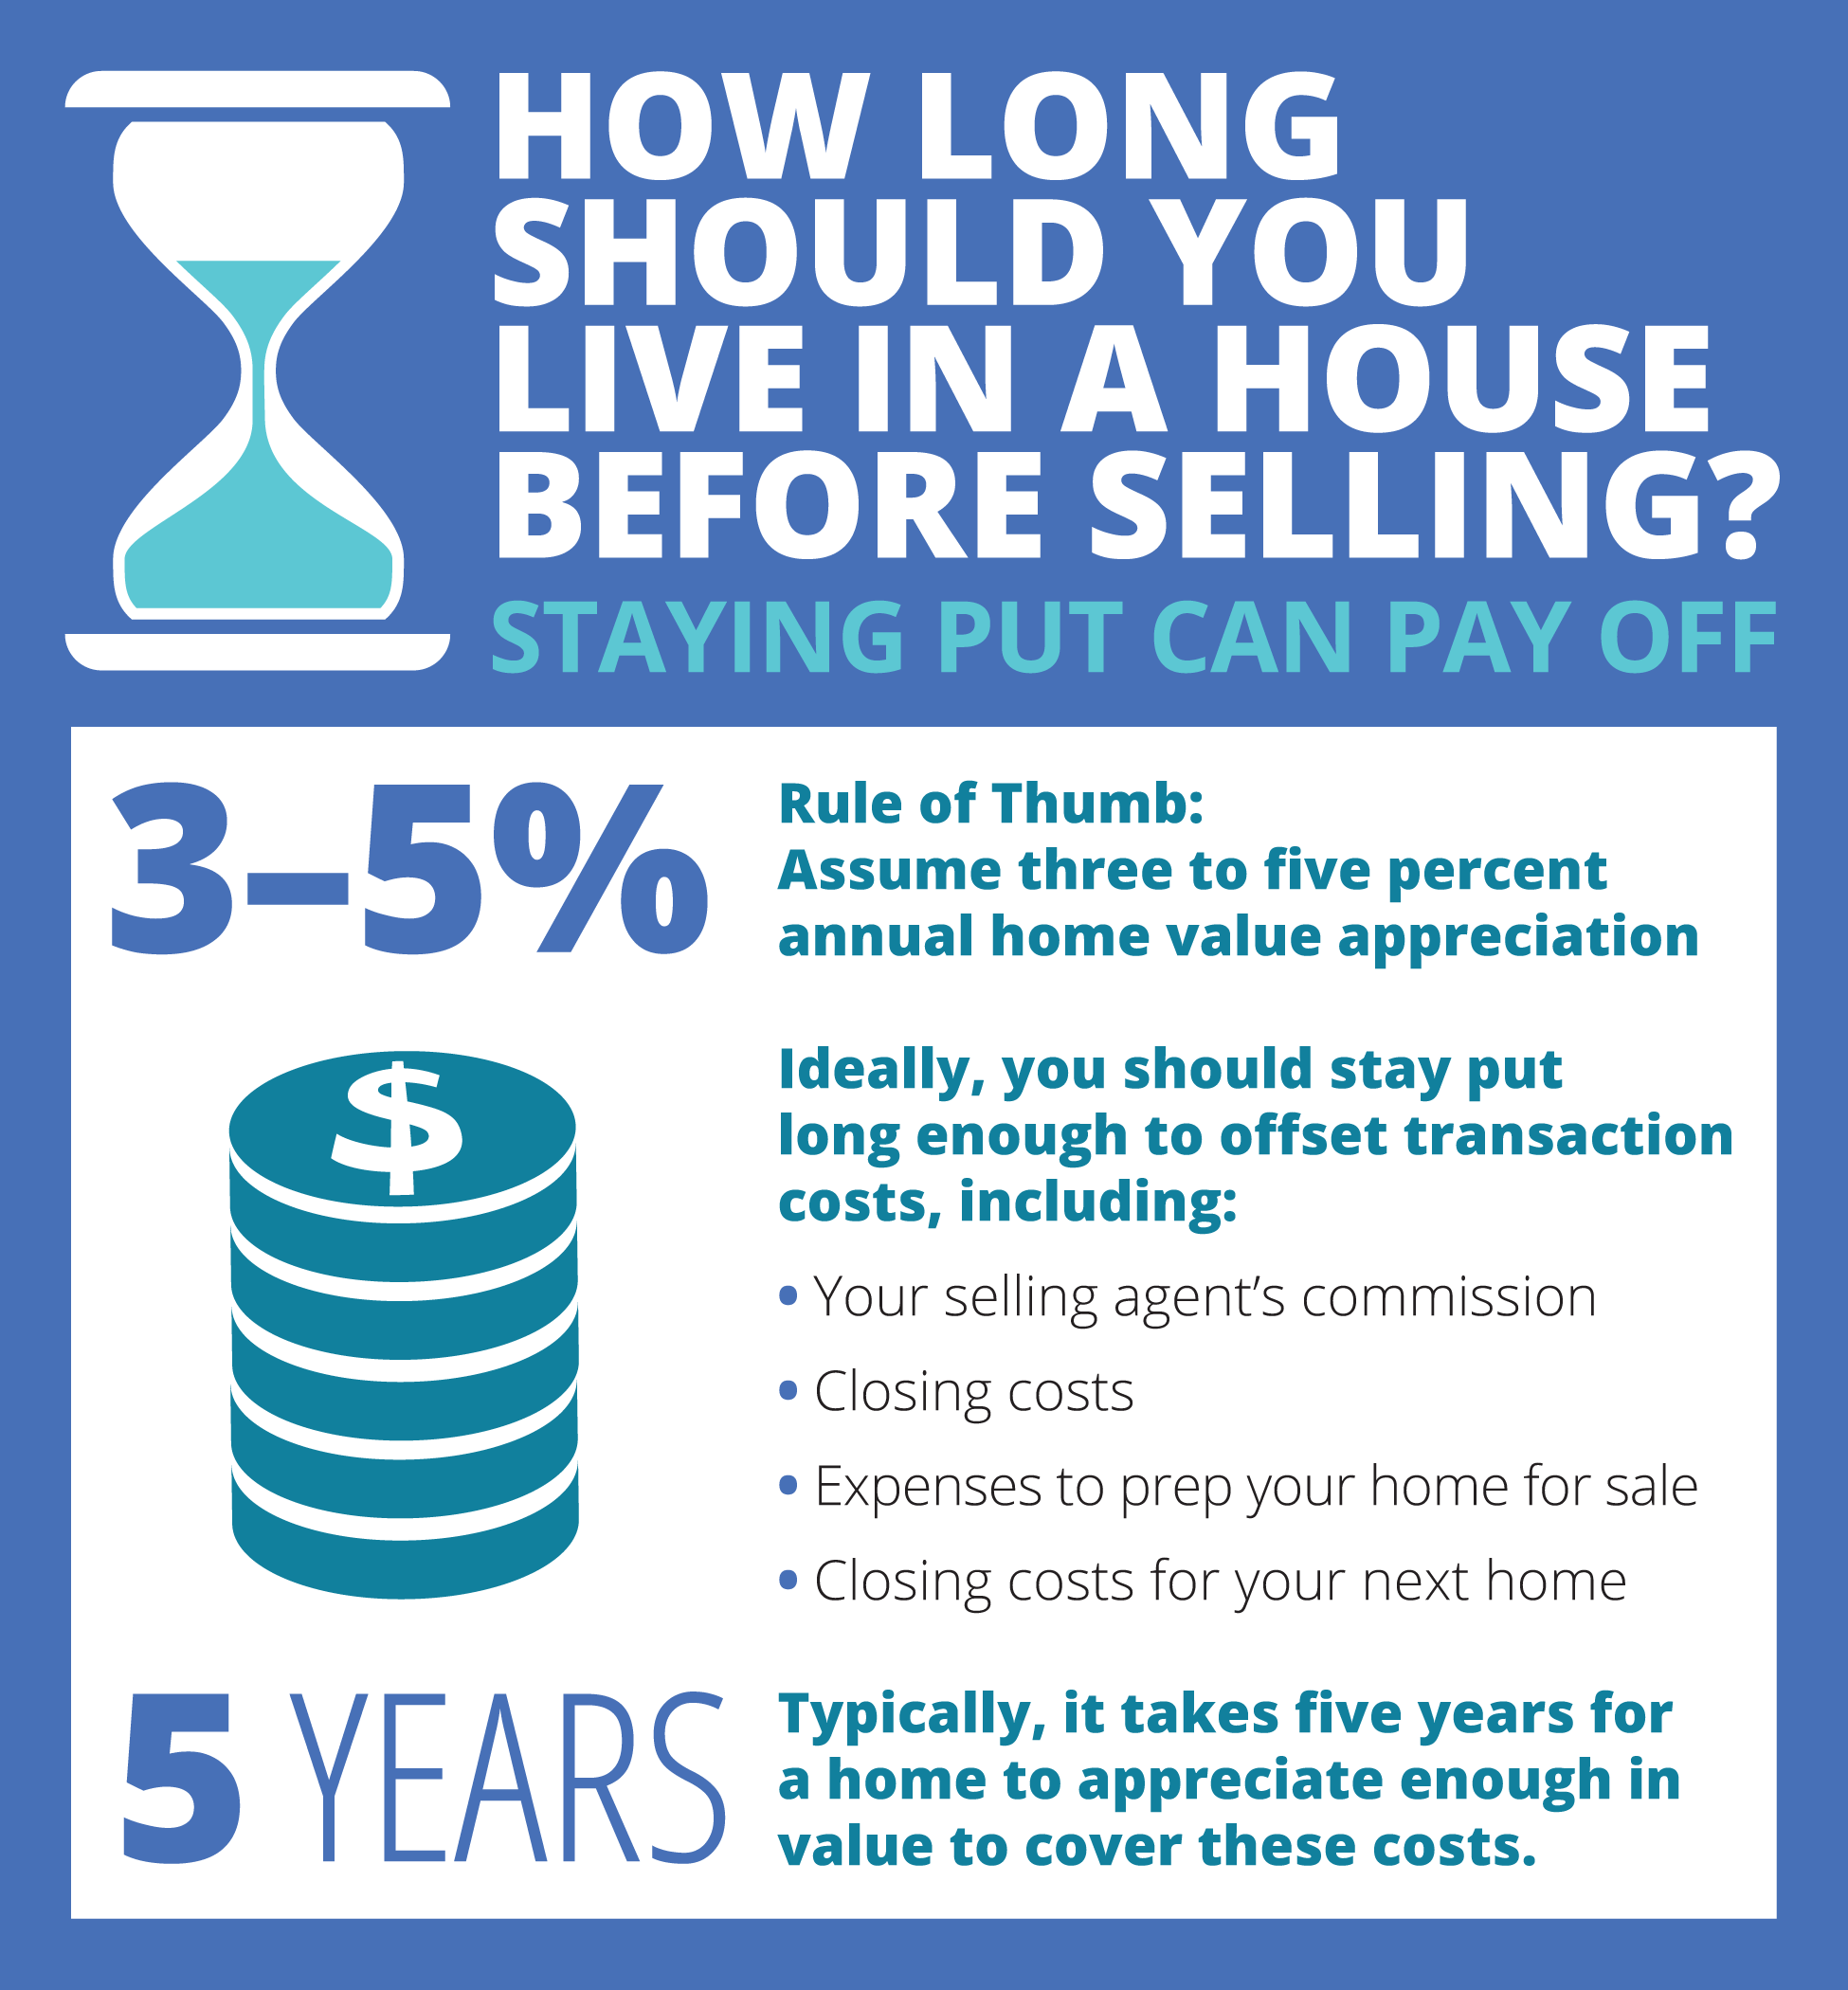 How long should you live in a house before selling?